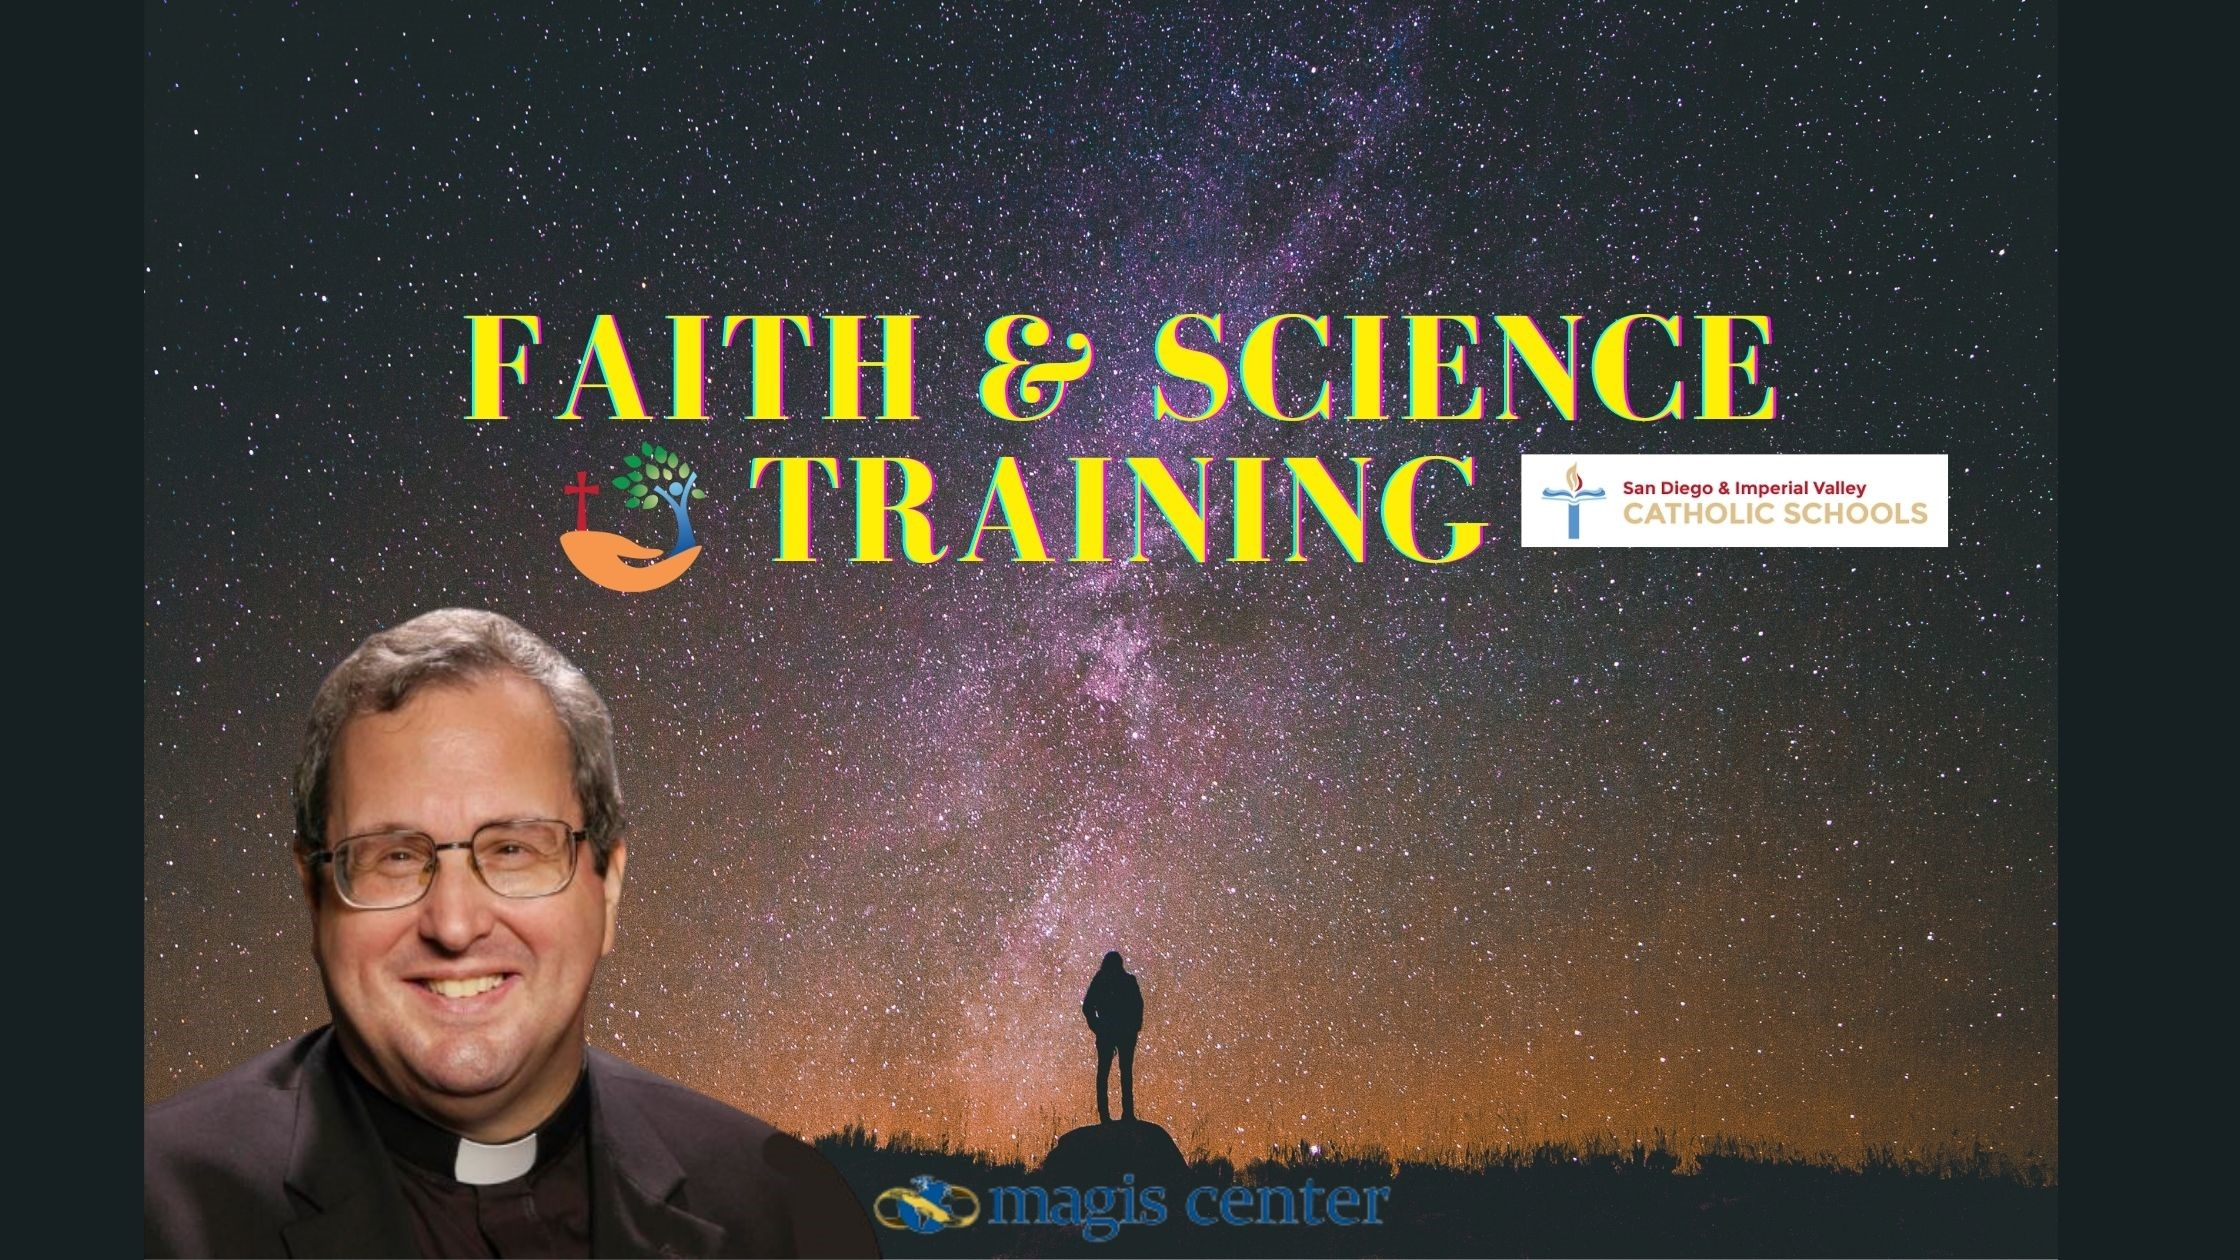 (Registration is now closed) Faith & Science Training for Middle School Teachers and Catechists